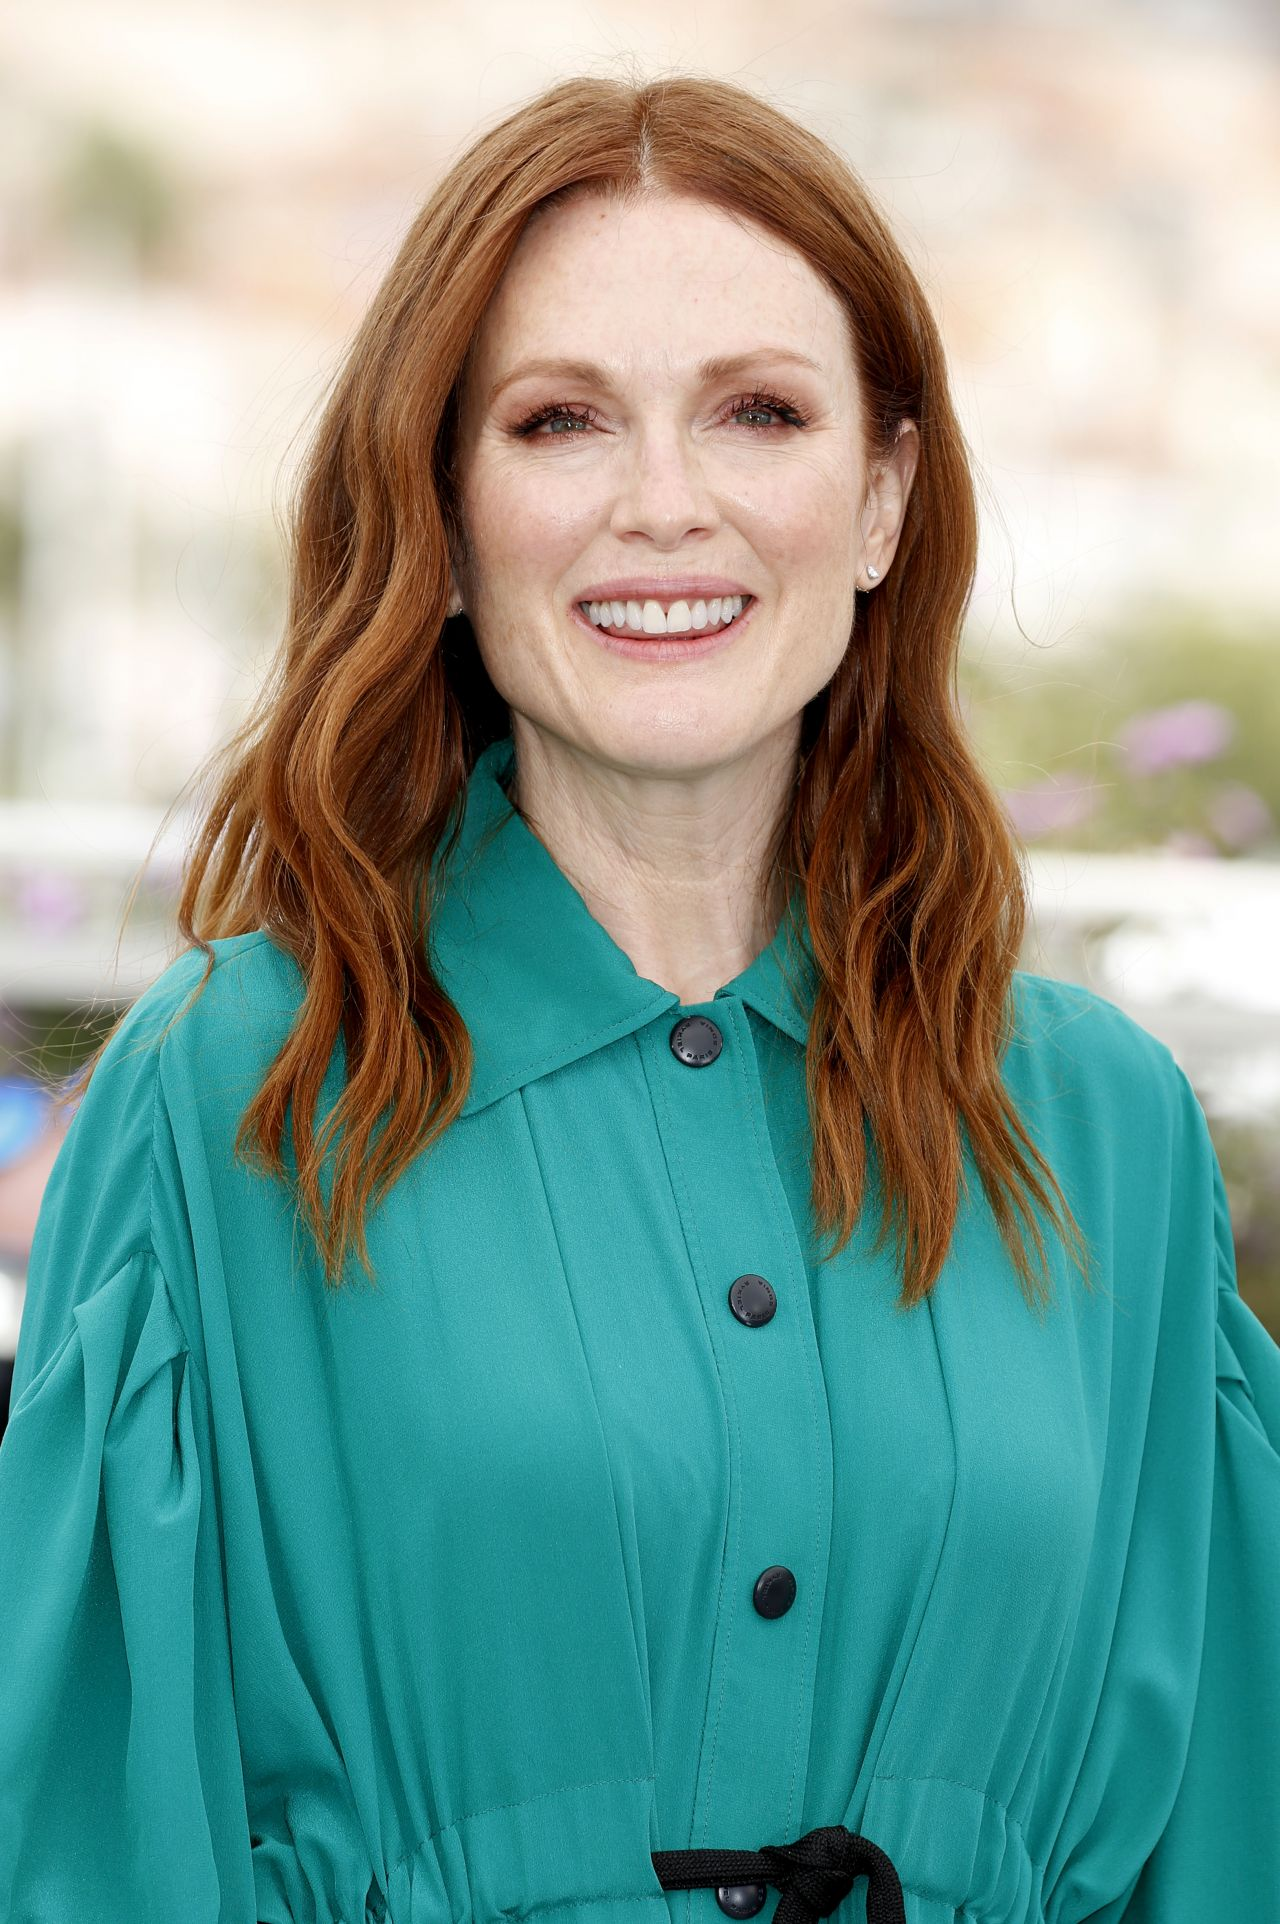 Julianne Moore Wonderstruck Premiere In Cannes 05 18 2017